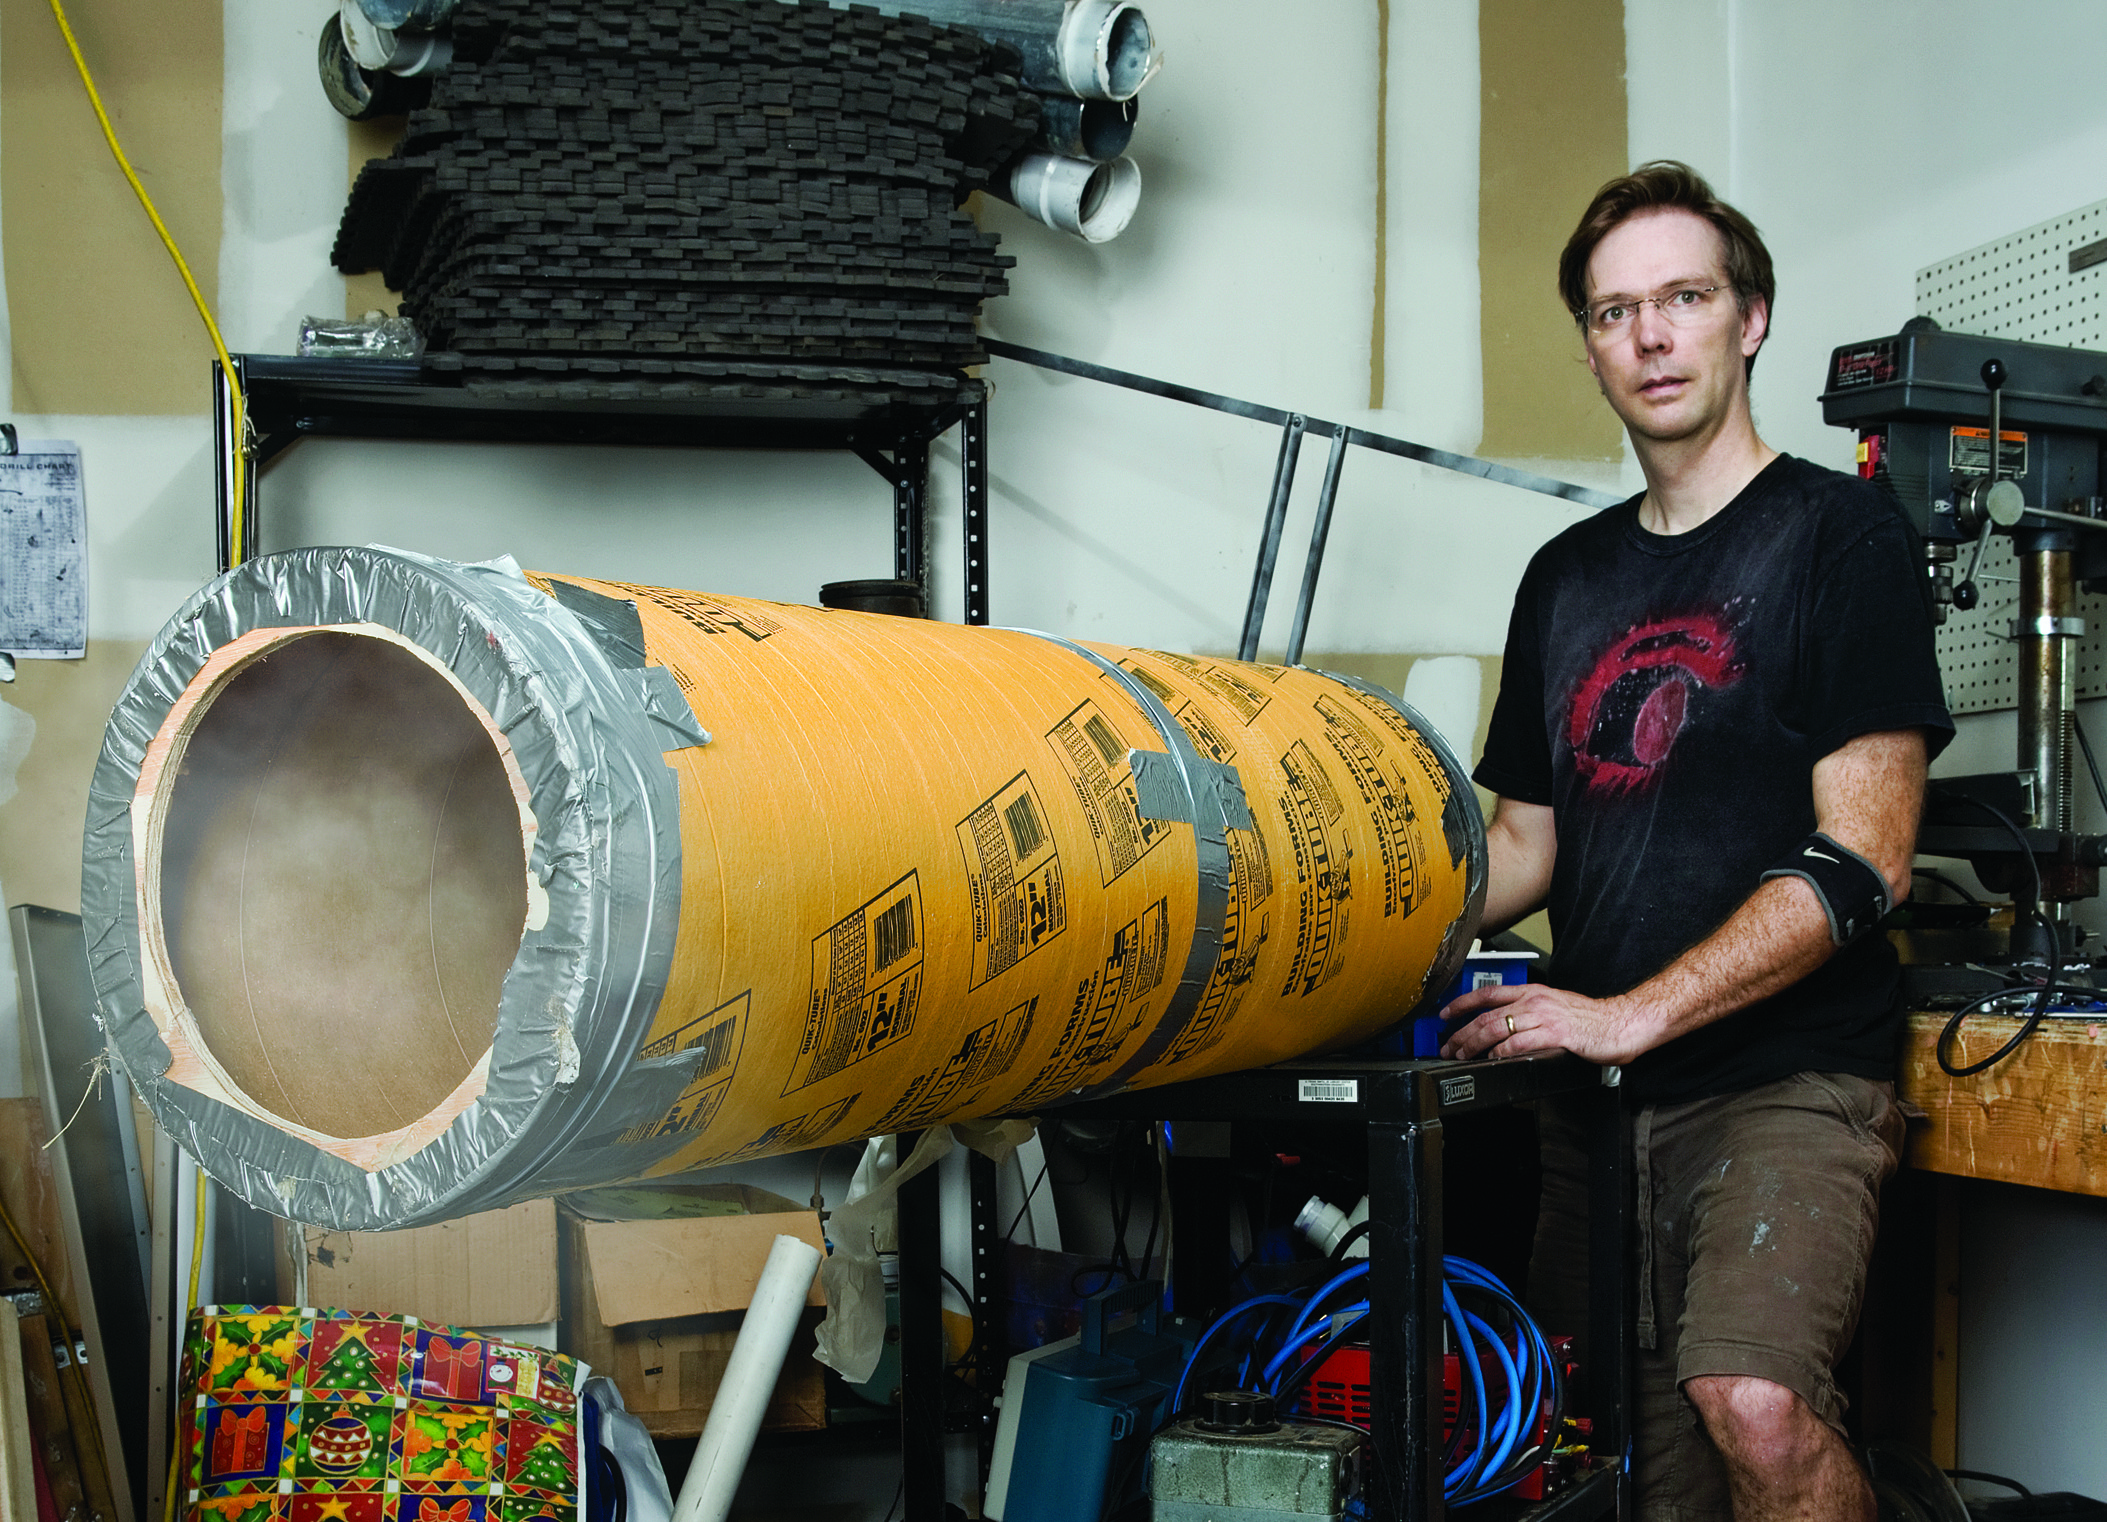 Build a Simple Vortex Cannon, Then Upgrade with a Subwoofer   Make: